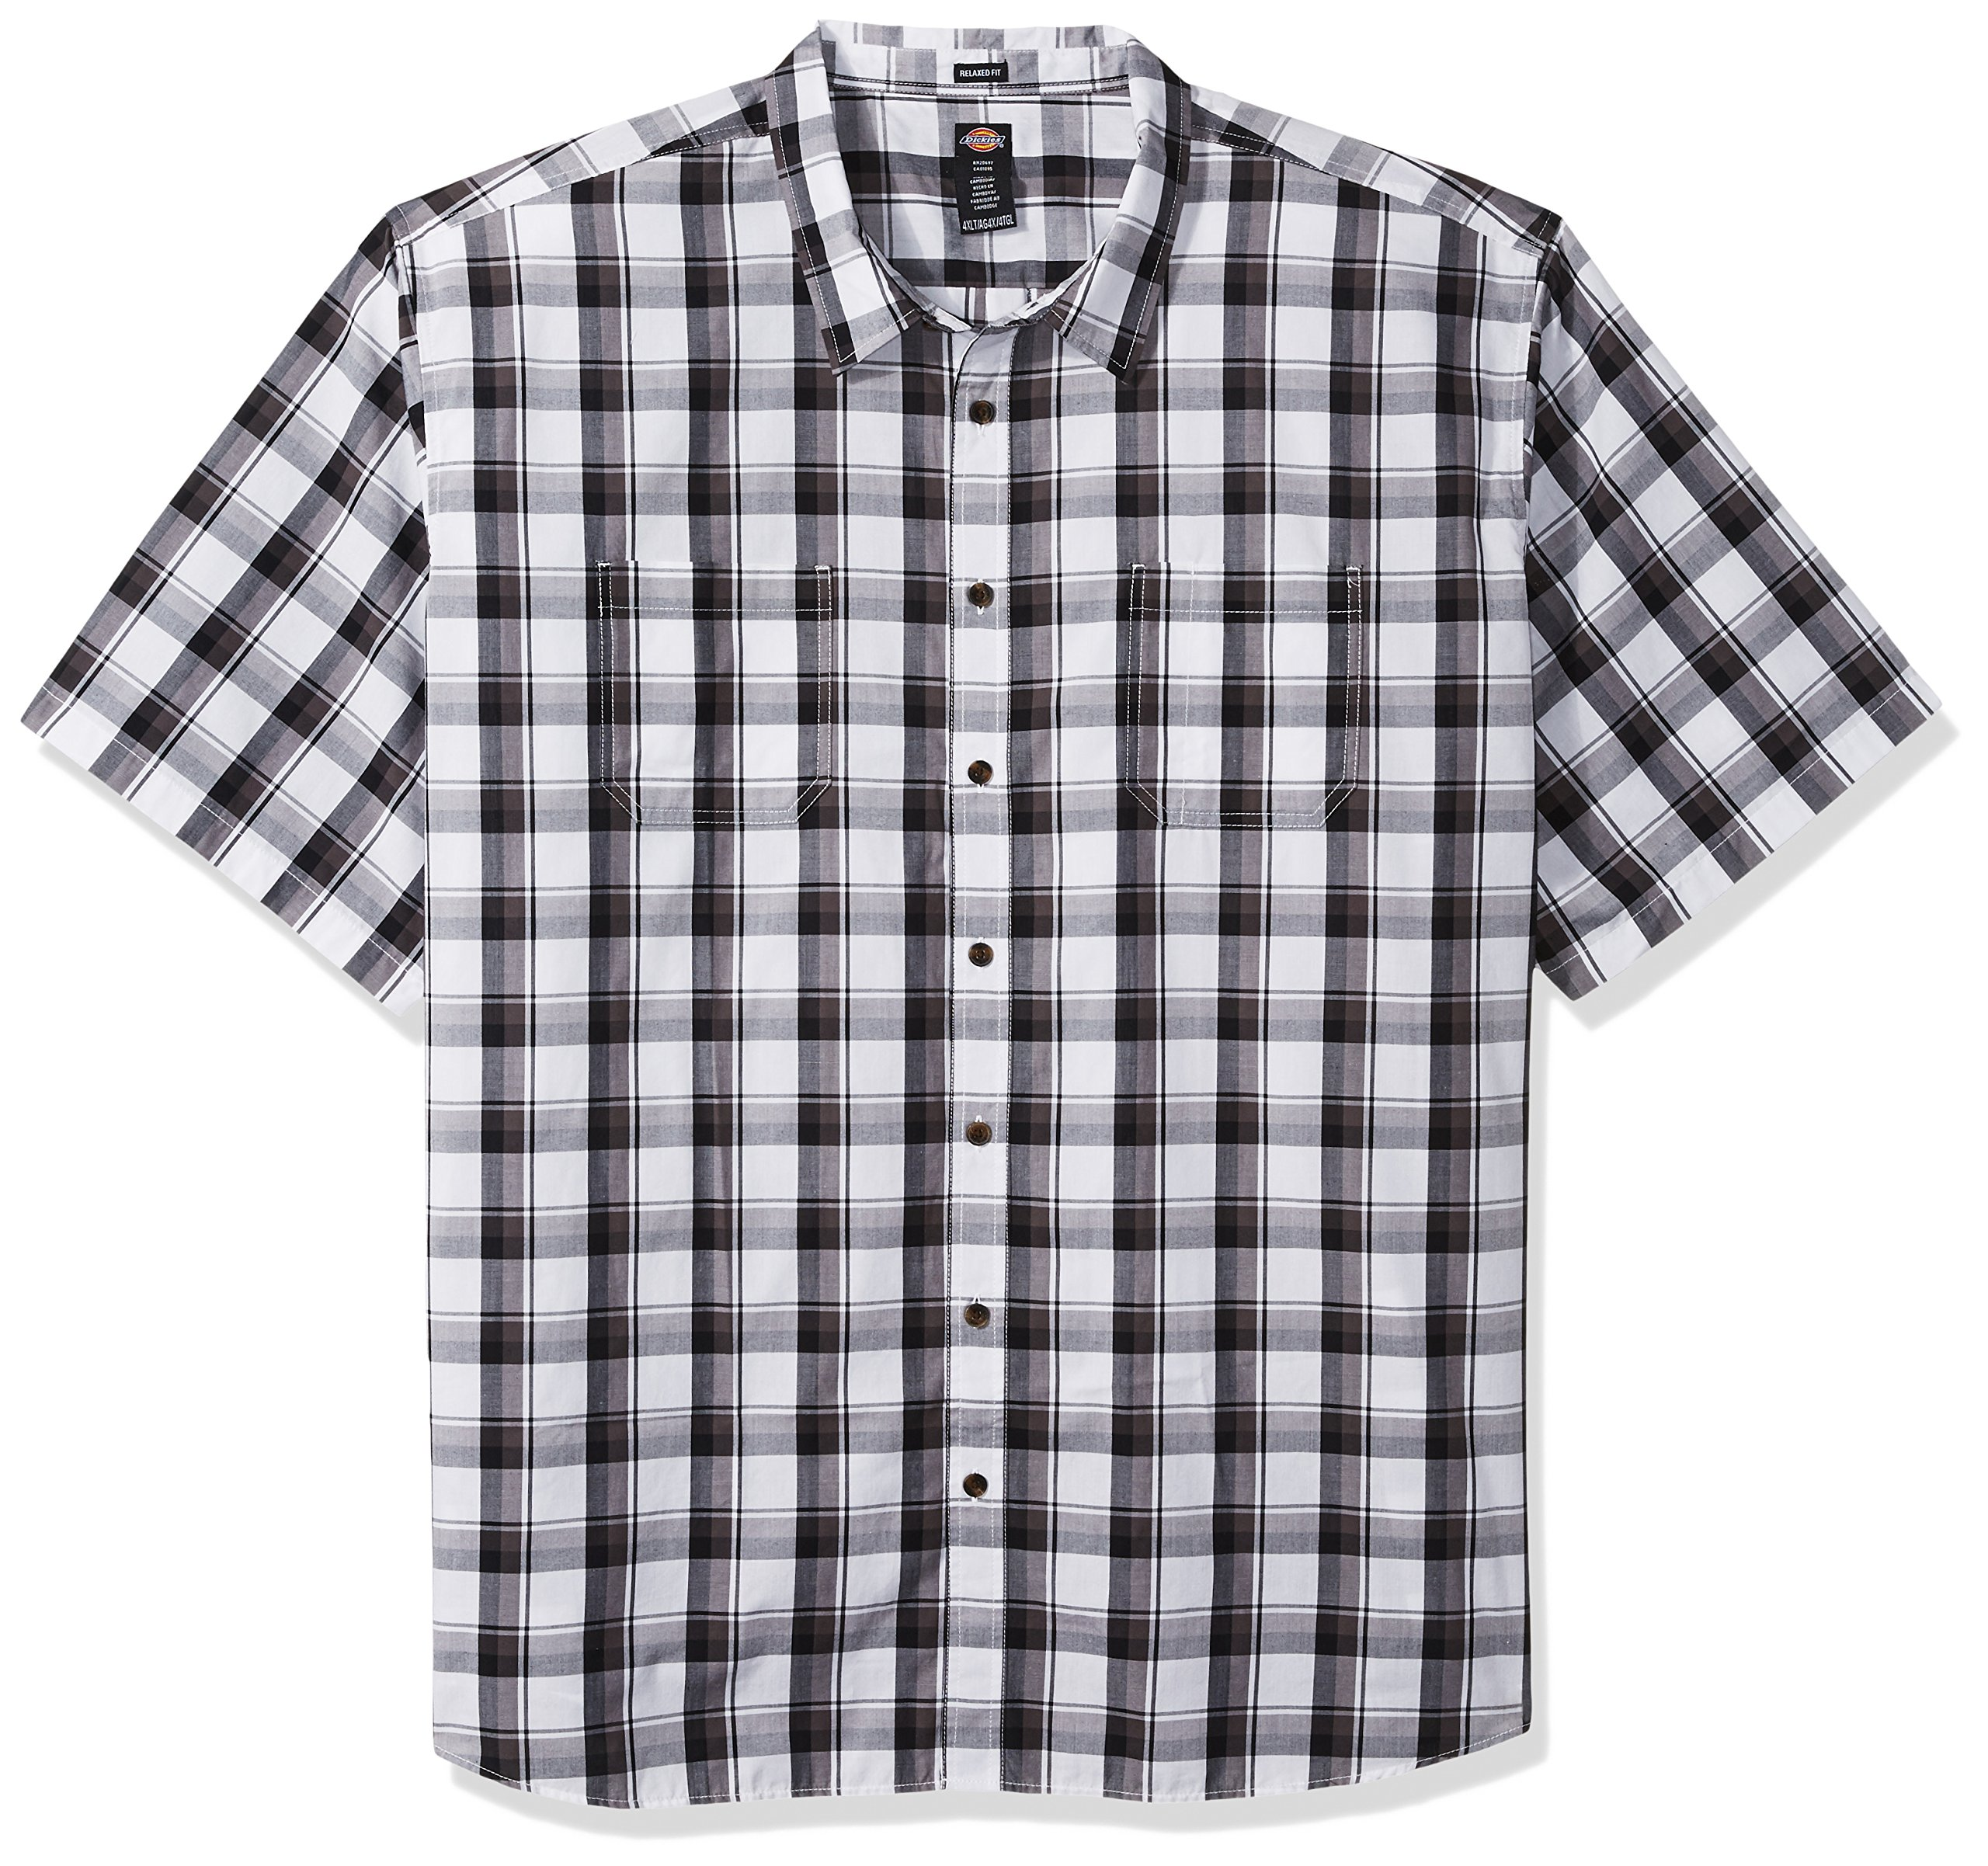 Dickies Mens Modern Fit Yarn Dyed Short Sleeve Flex Plaid Shirt